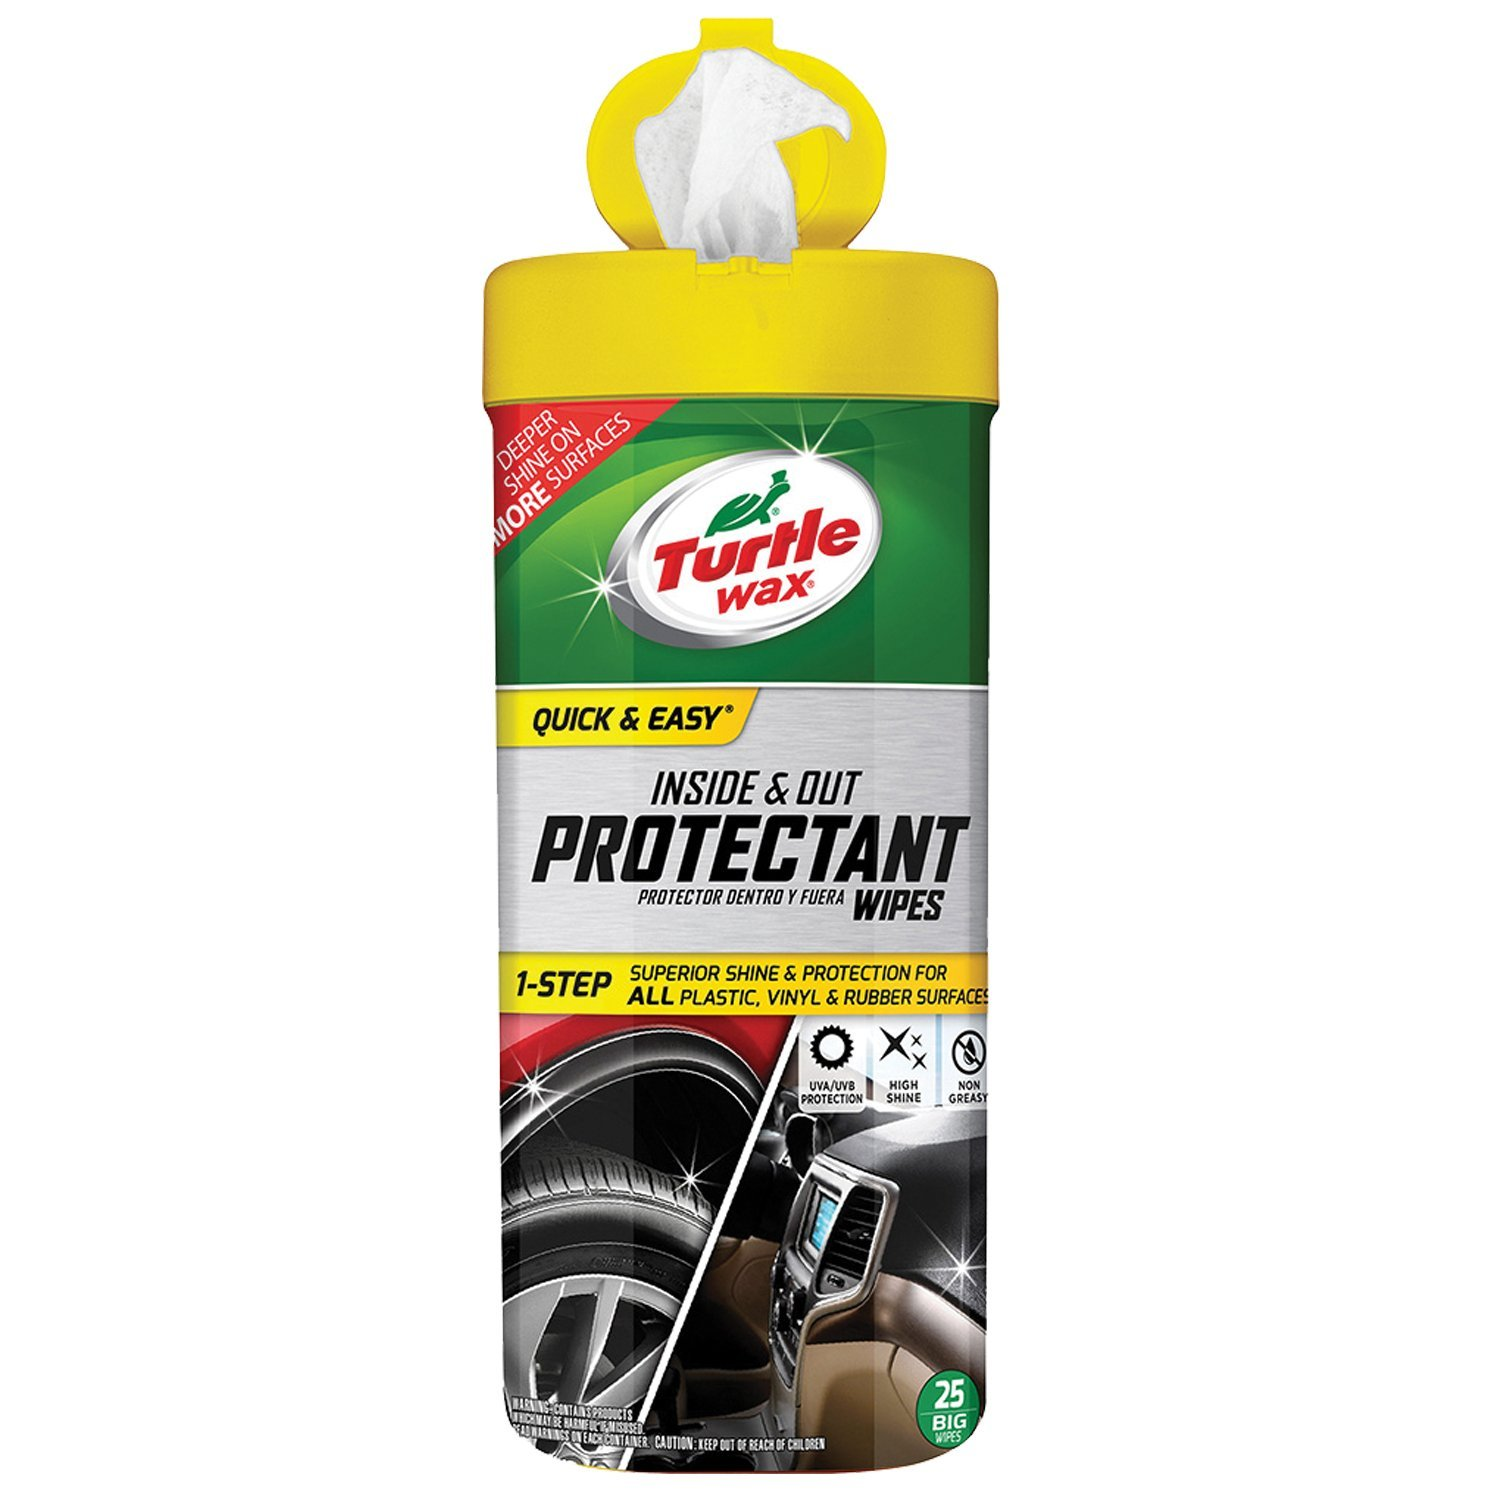 Turtle Wax 50651 Quick and Easy Inside and Out Protectant Wipes